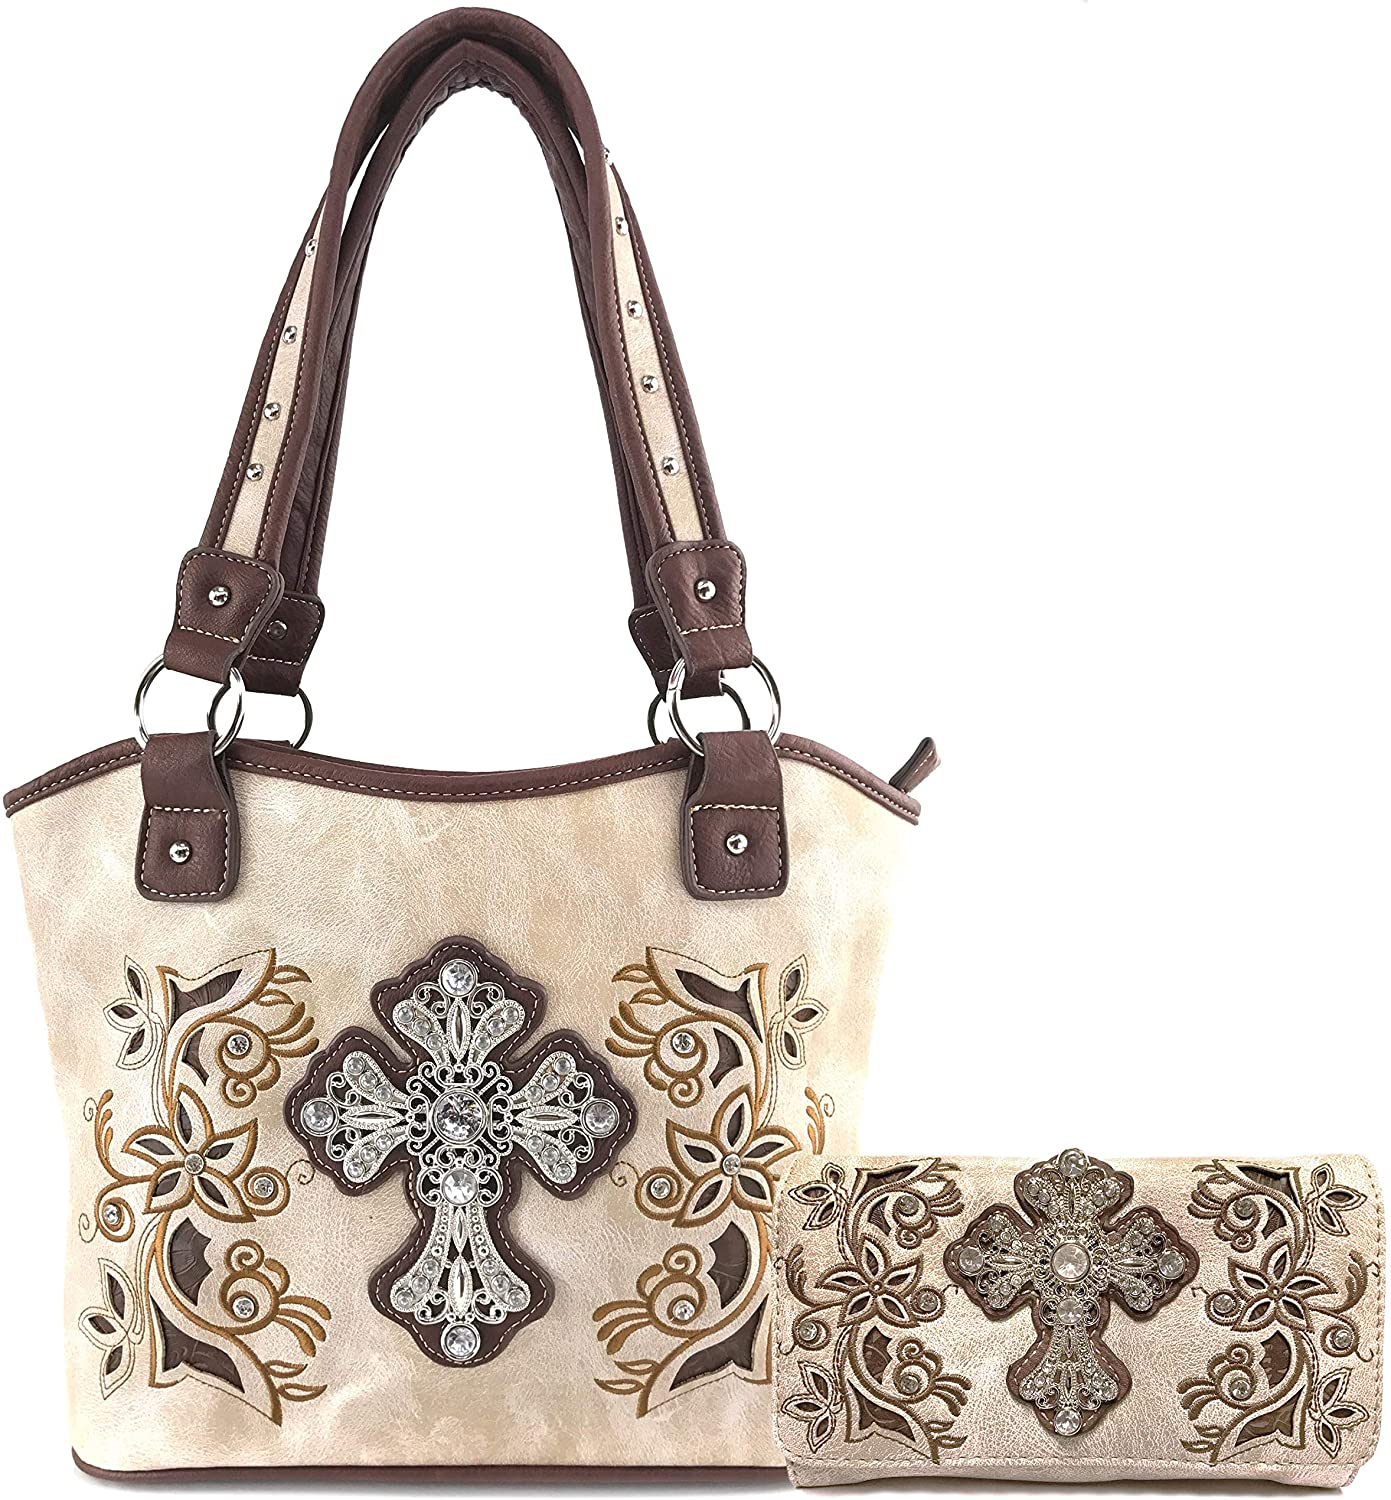 Justin West Western Rhinestone Cross Tote Purse Embroidery Floral Design Leather Concealed Carry Handbag